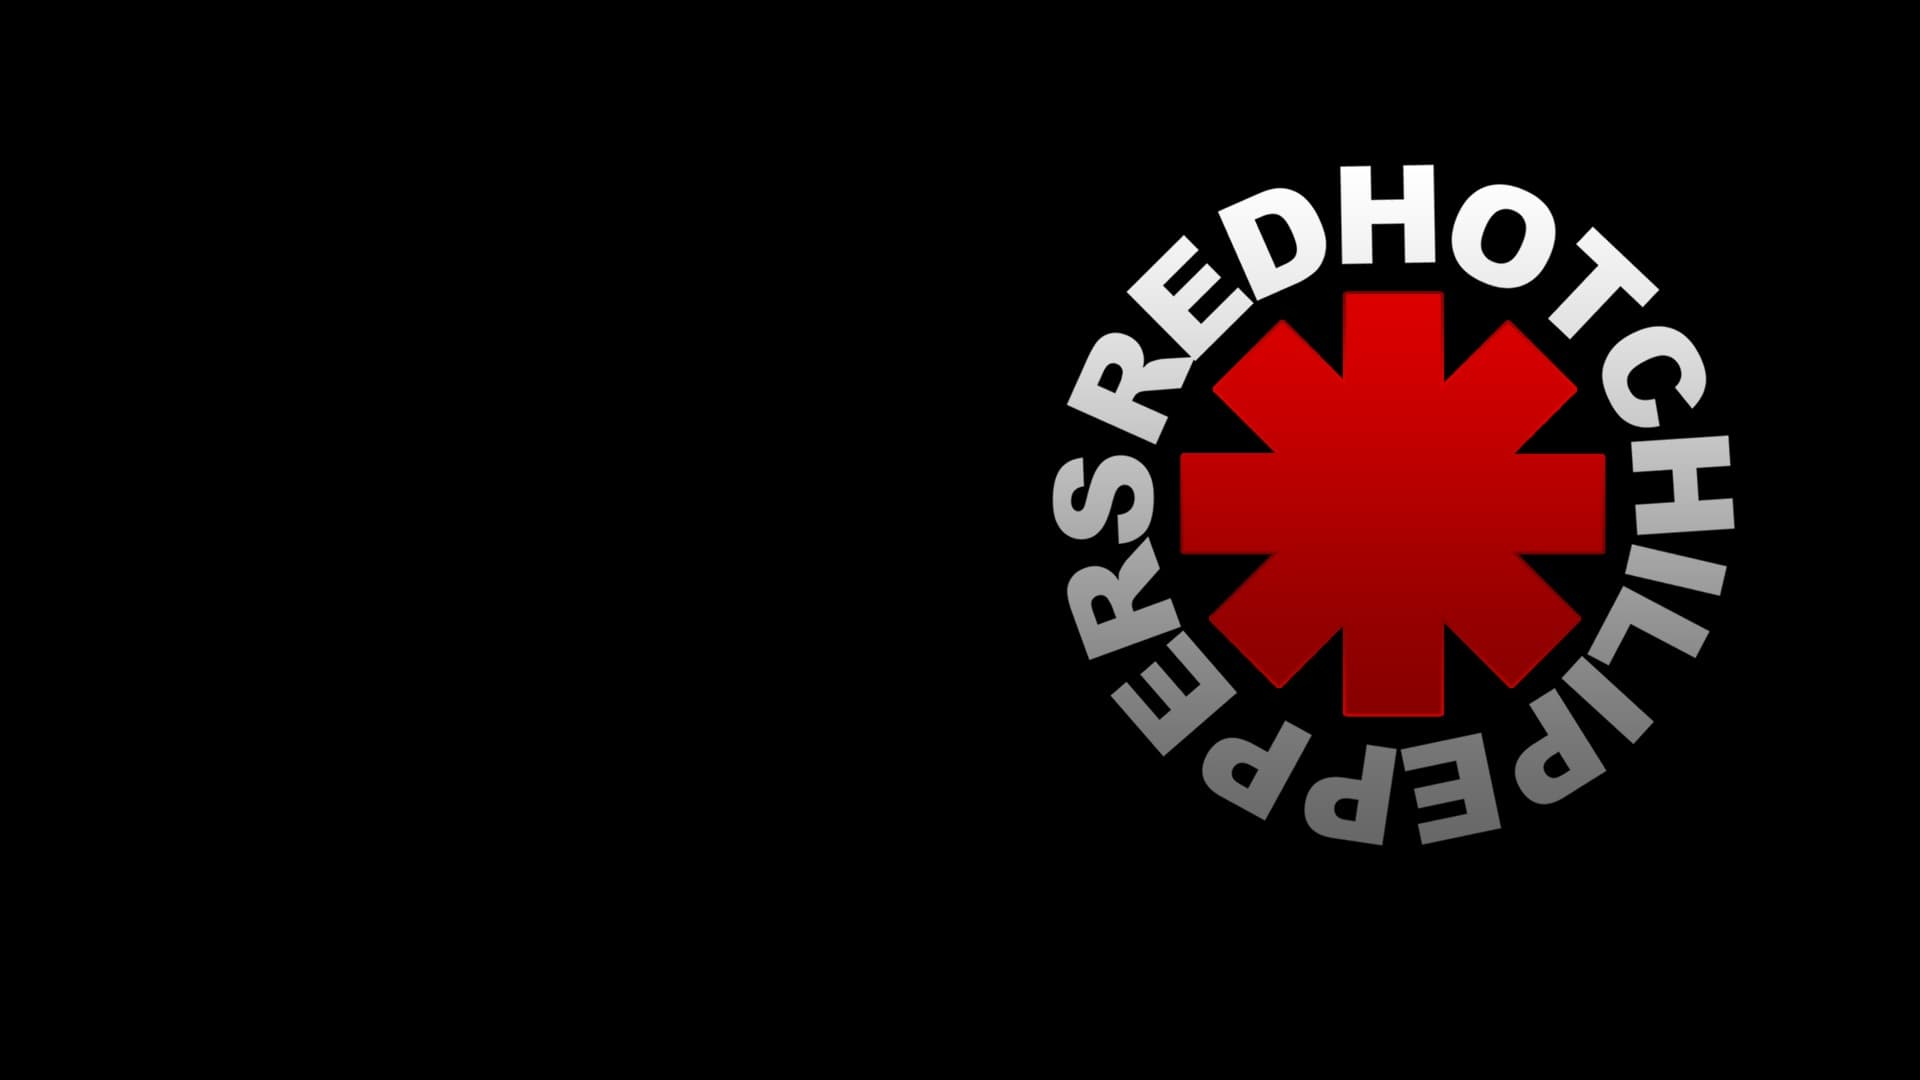 Red Hot Chili Peppers Wallpapers hd